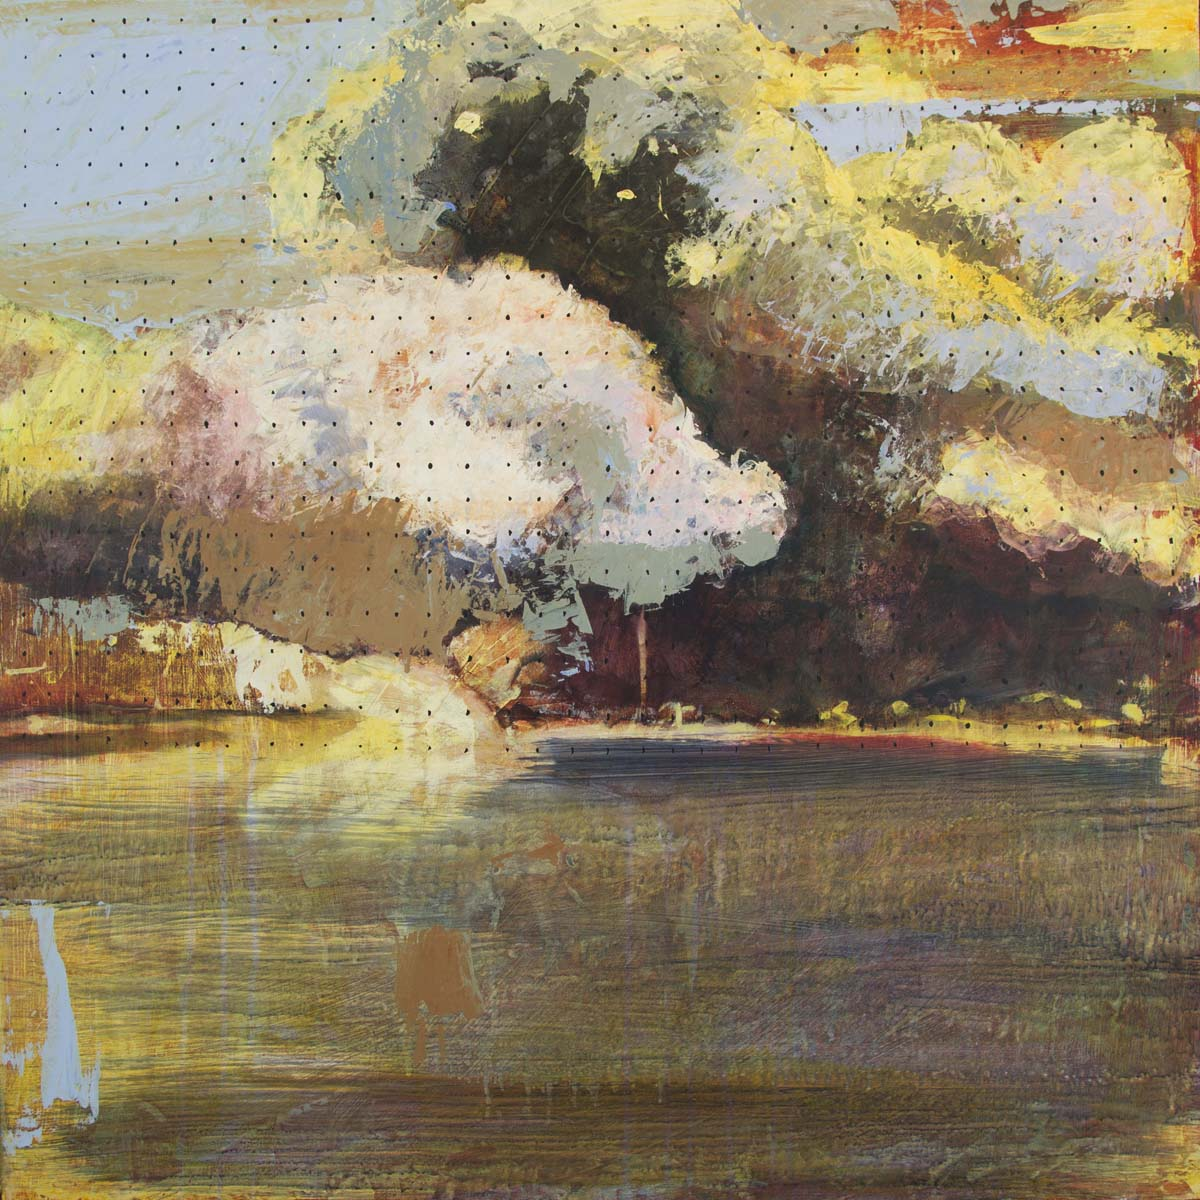 All Kinds Of Weather, Medford Lakes, NJ, 36 x 36